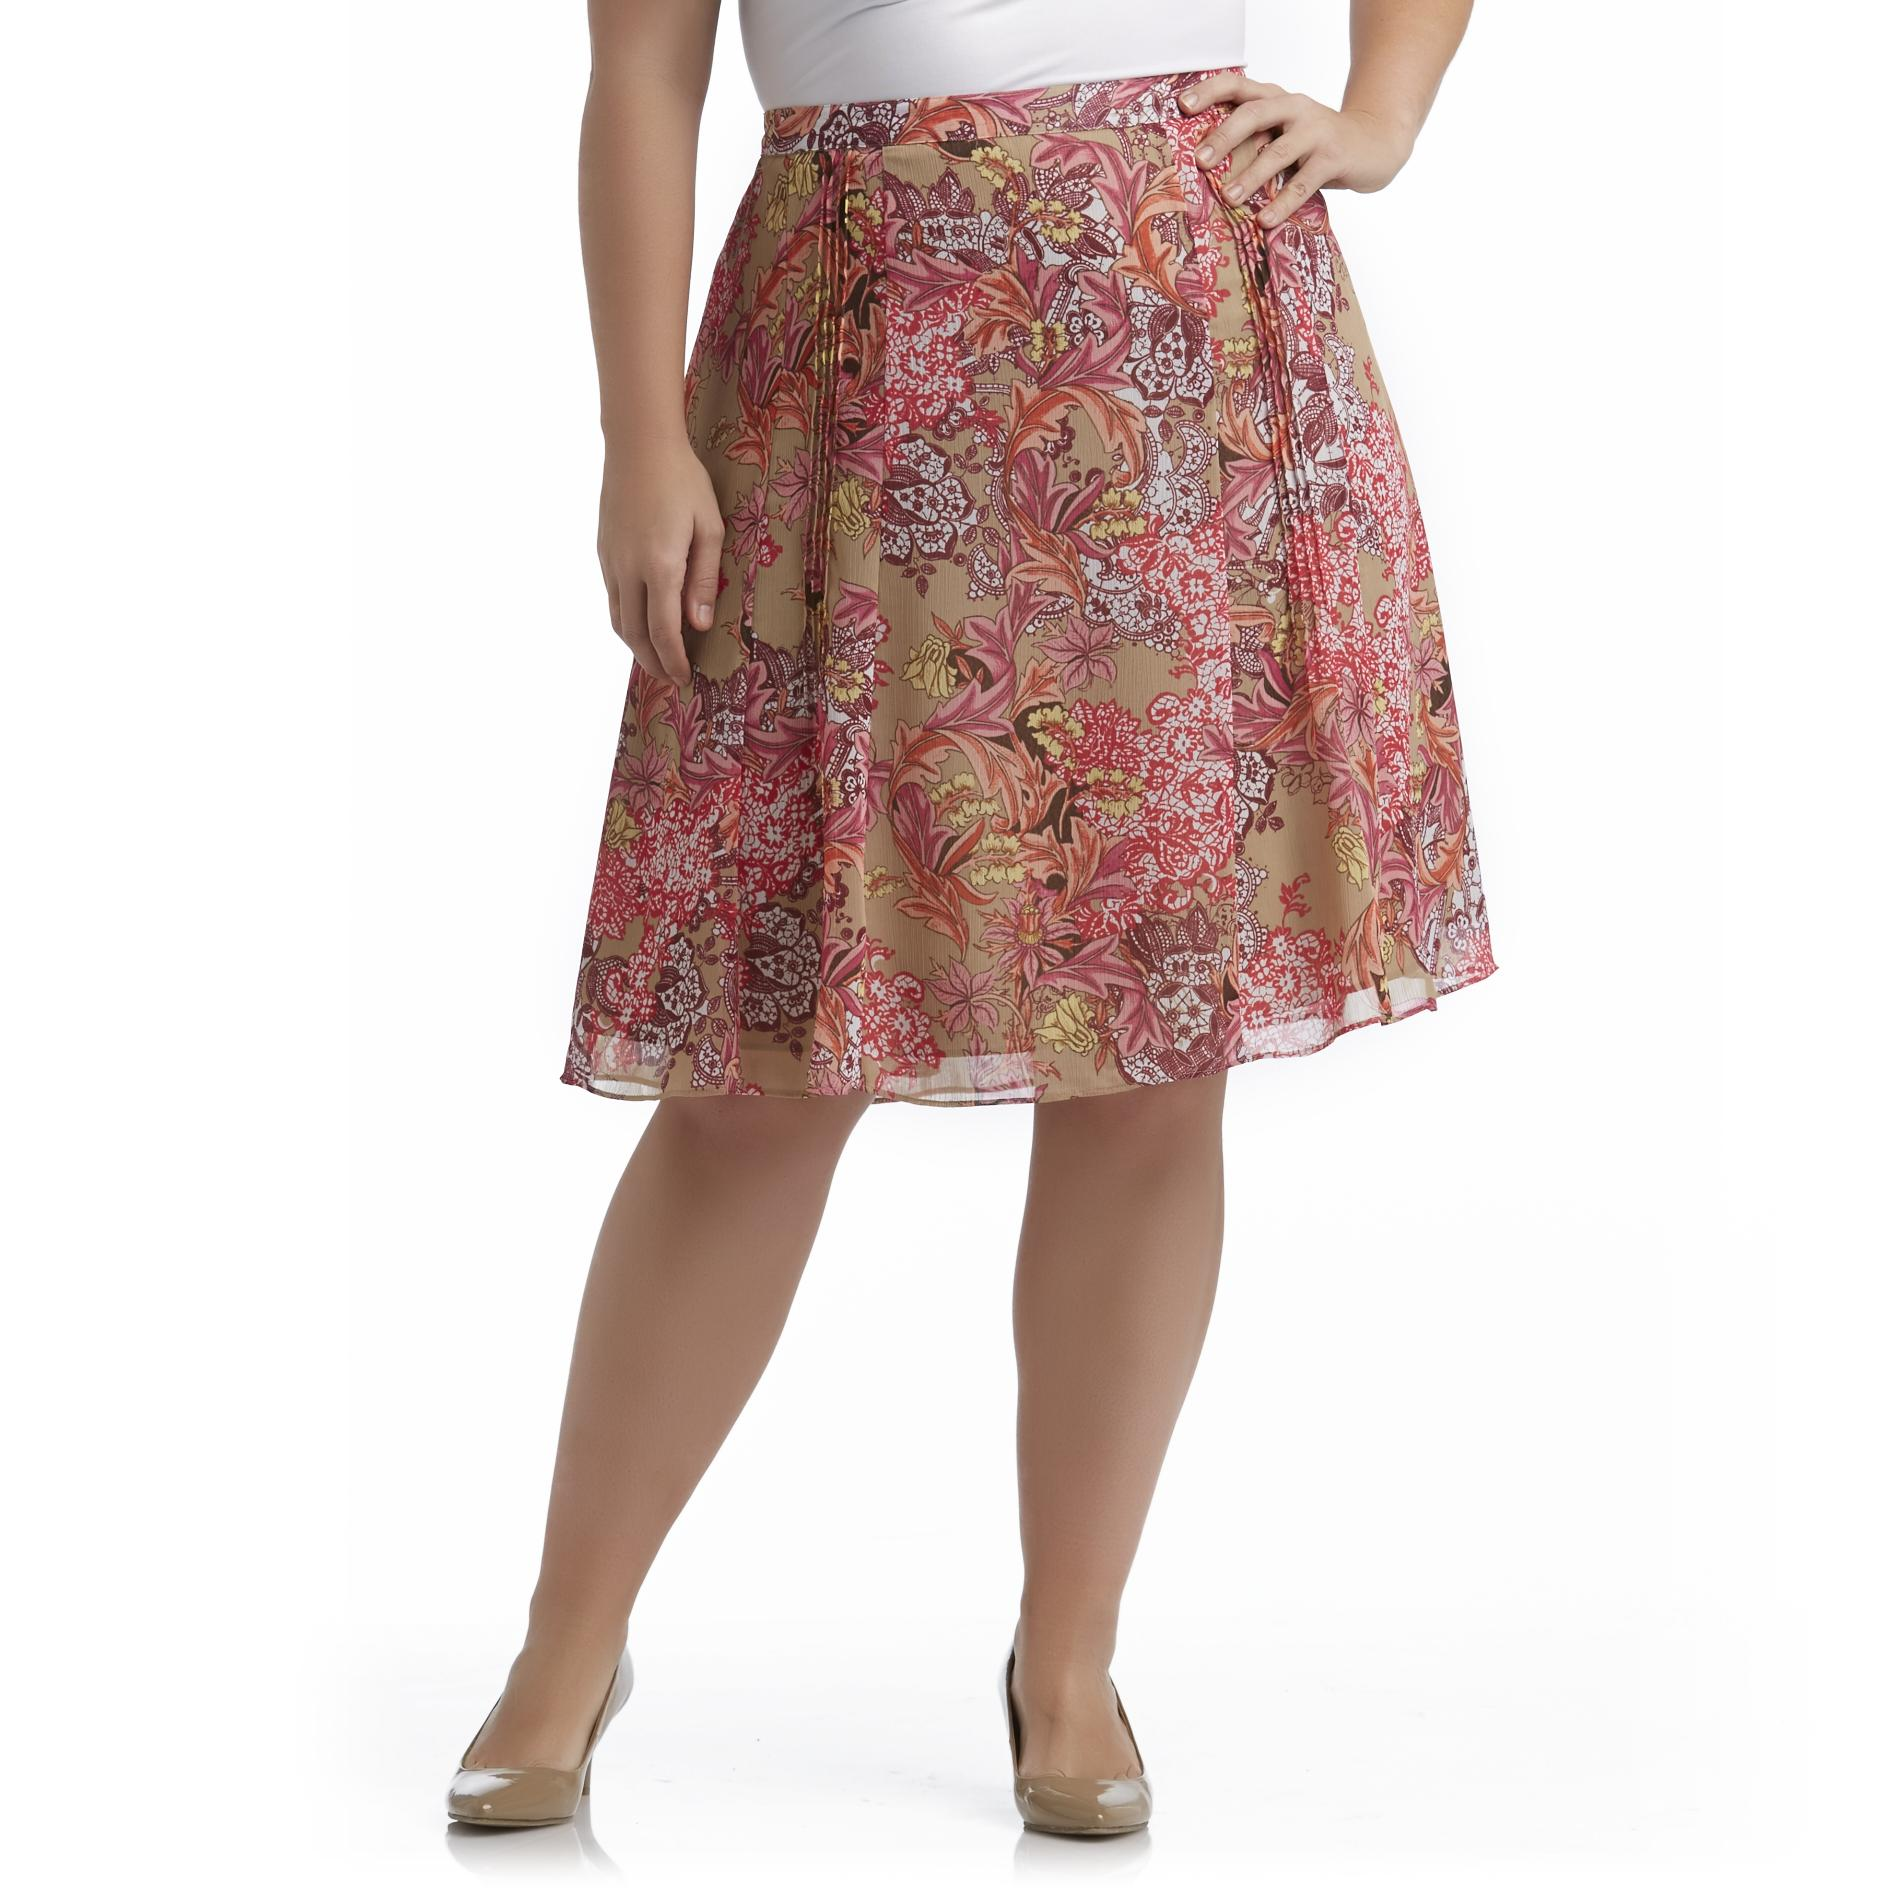 Jaclyn Smith Women's Plus A-Line Skirt - Floral at Kmart.com